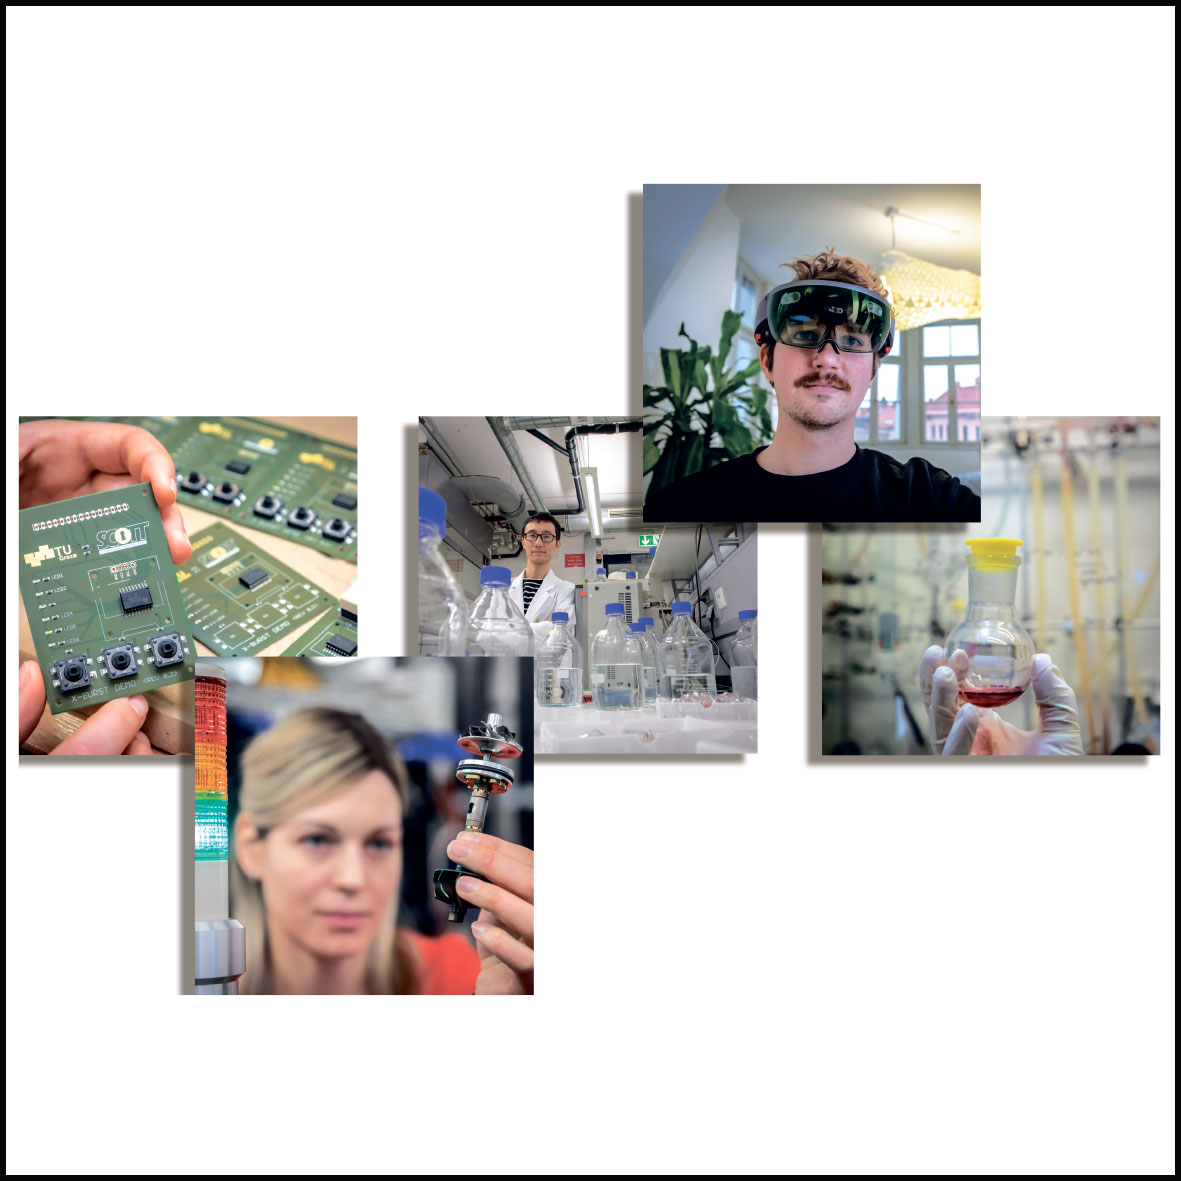 Five small square pictures show different research situations: an electronic circuit board, a woman holds up a metallic object, in front of a man are numerous transparent vessels, a man wears unusual glasses, a hand in a protective glove holds up a transparent vessel containing a red liquid.